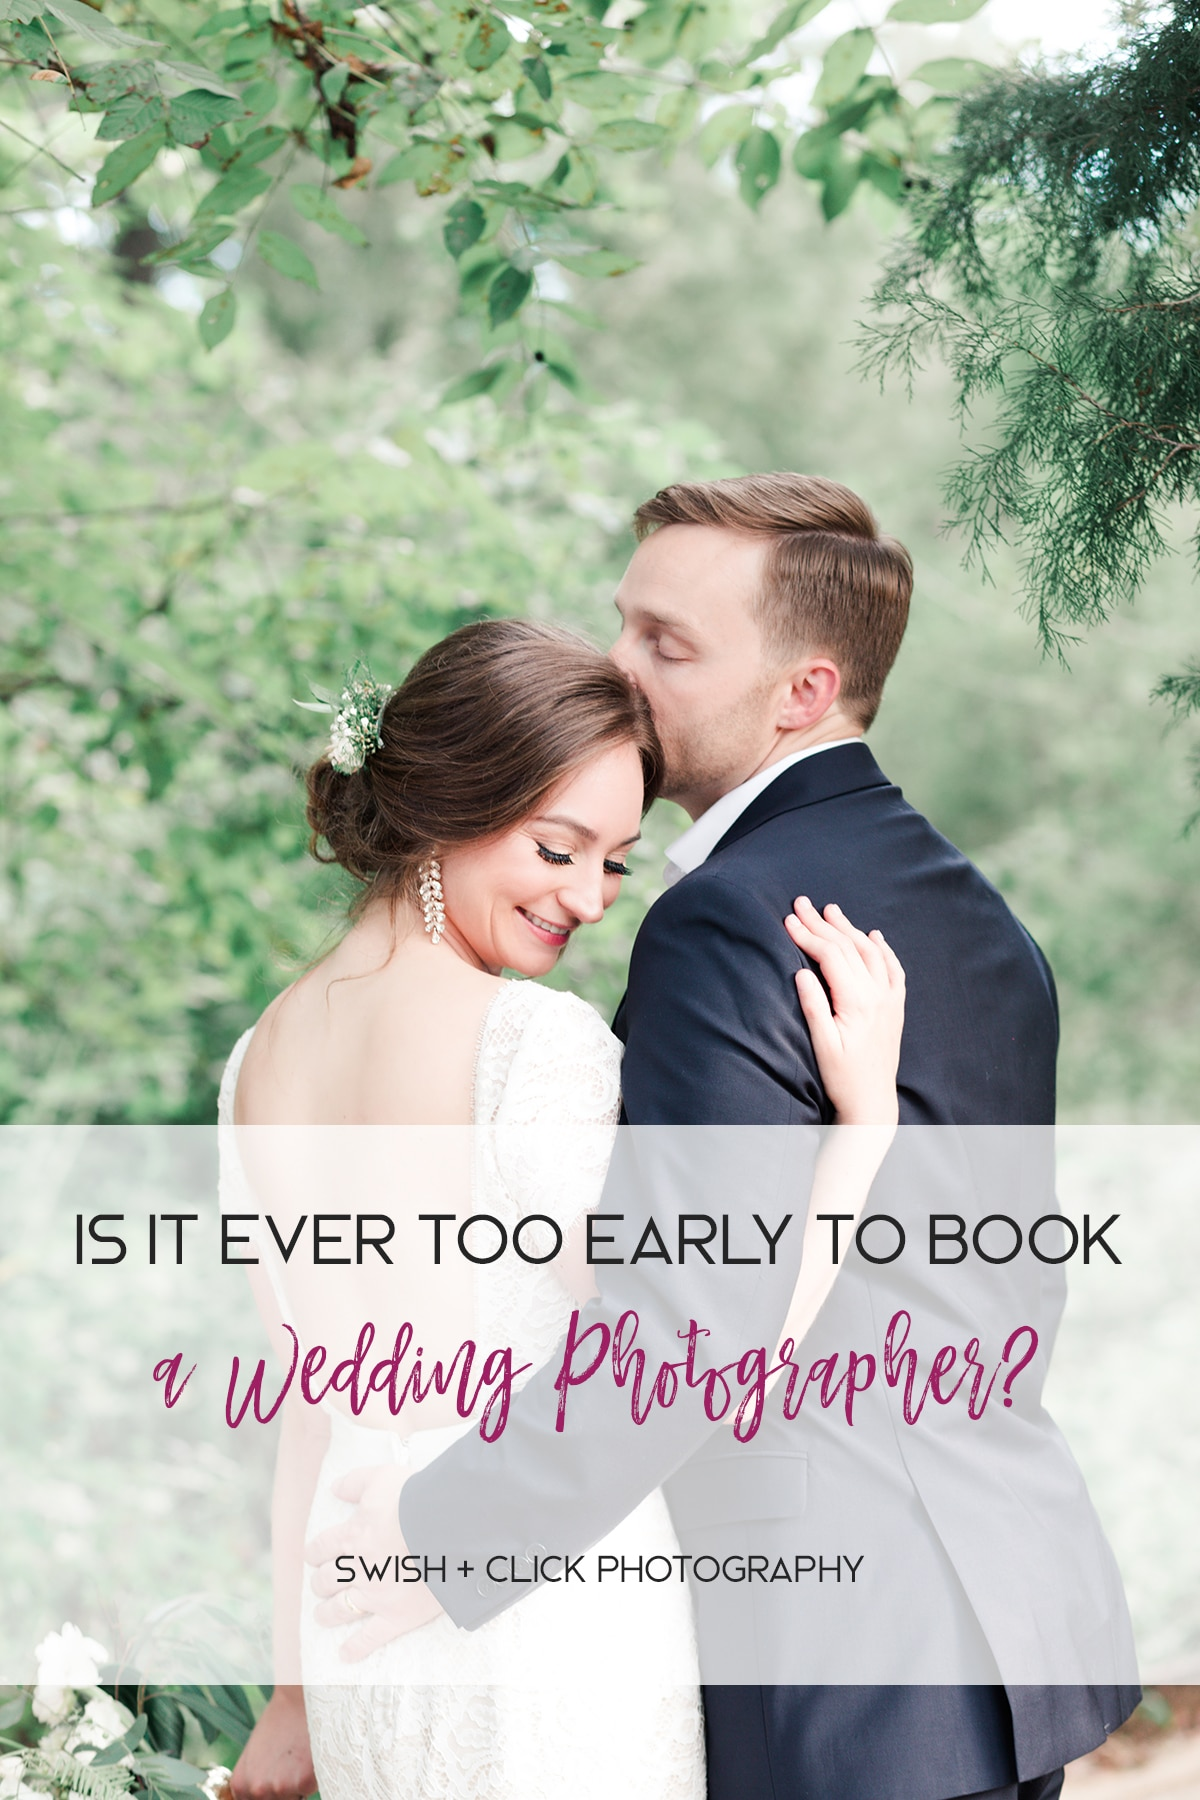 Is It Ever too Early to Book a Wedding Photographer?